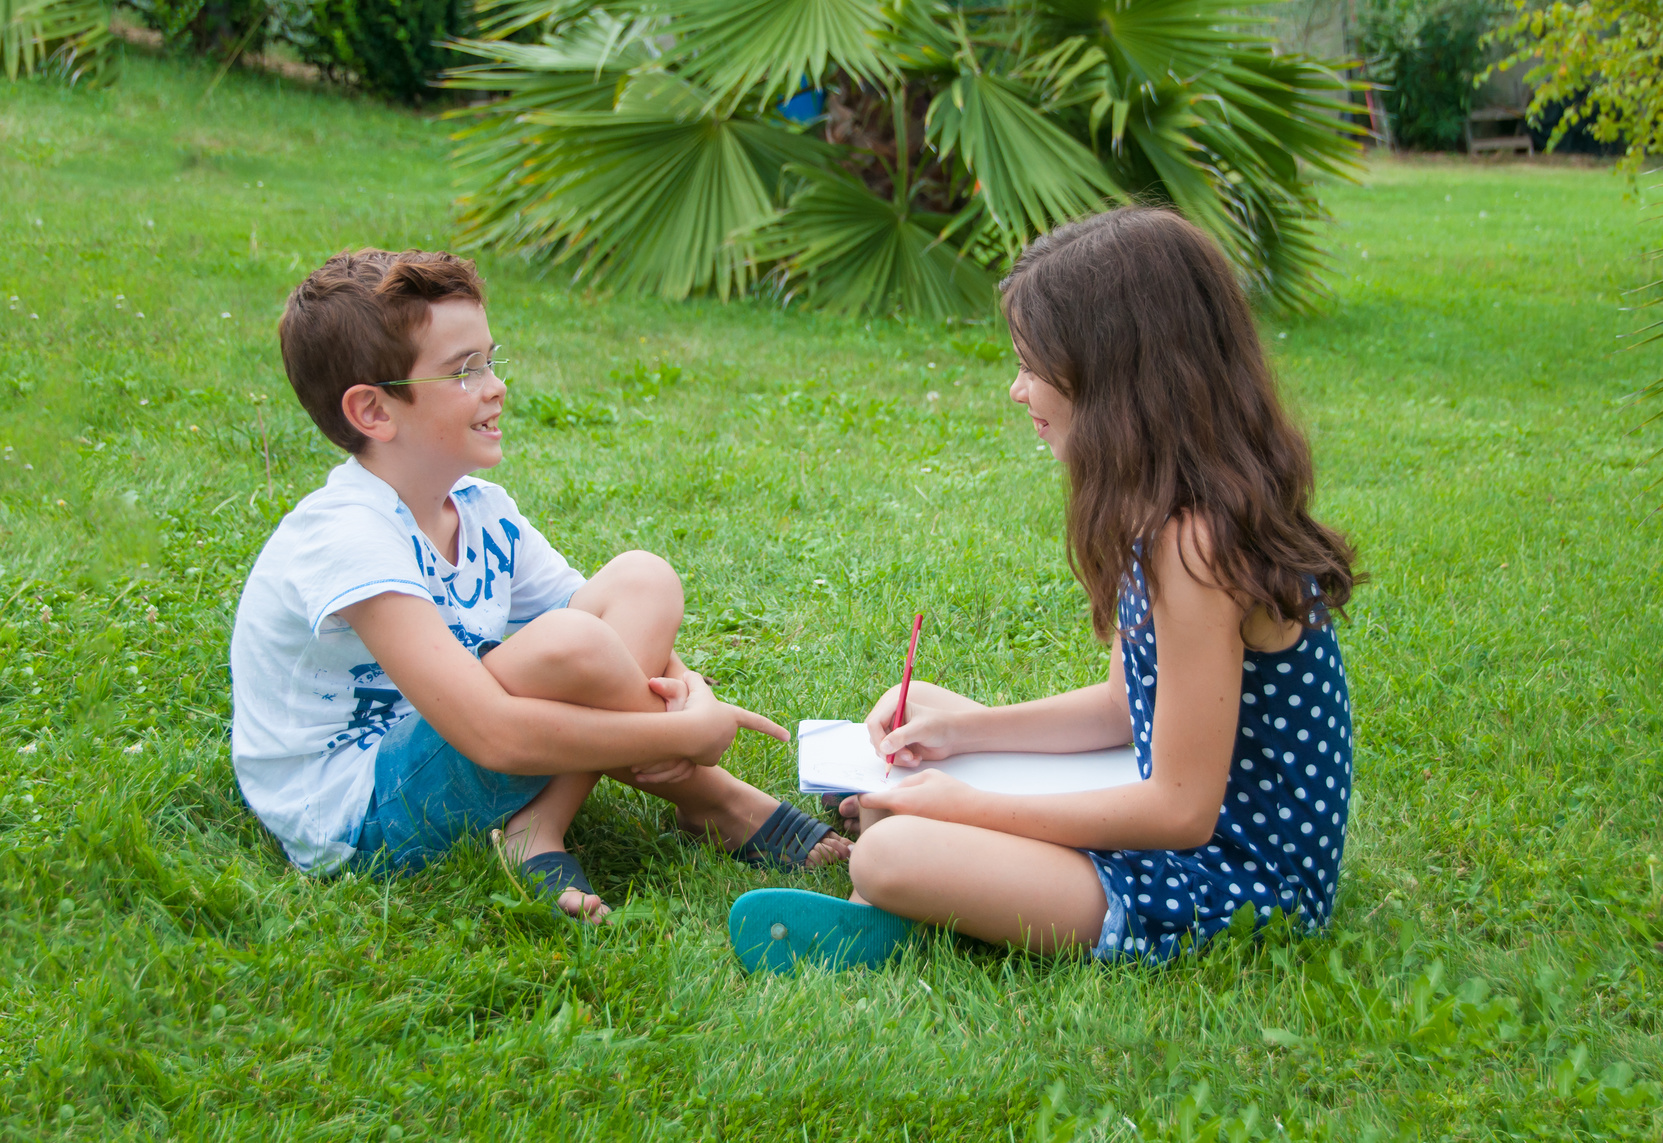 Girl drawing her brother outdoors on grass in summer